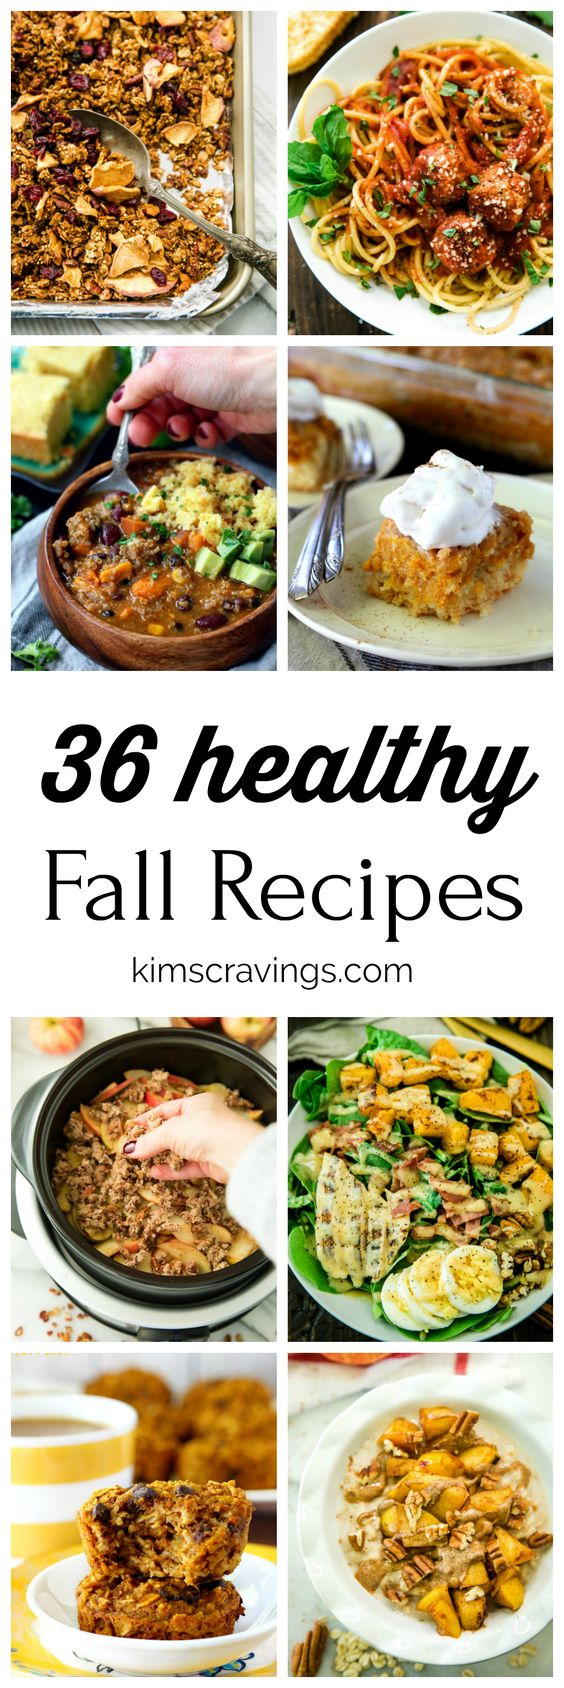 36 Healthy Fall Recipes